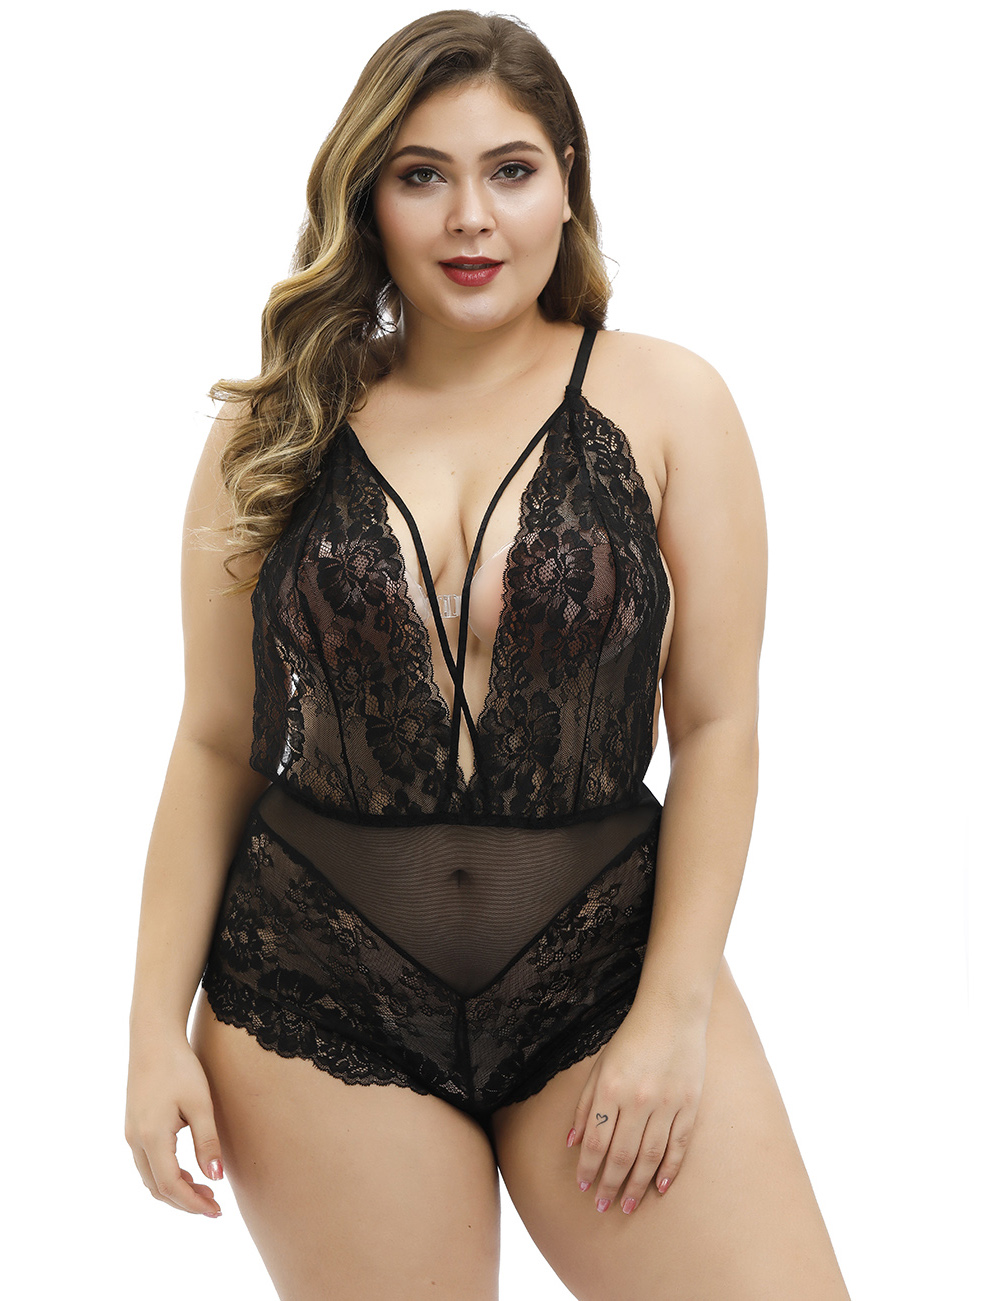 //cdn.affectcloud.com/hexinfashion/upload/imgs/PLUS_SIZE_CLOTHING/Plus_Size_Lingerie/SY190194-BK1/SY190194-BK1-202001075e1423f13921d.jpg